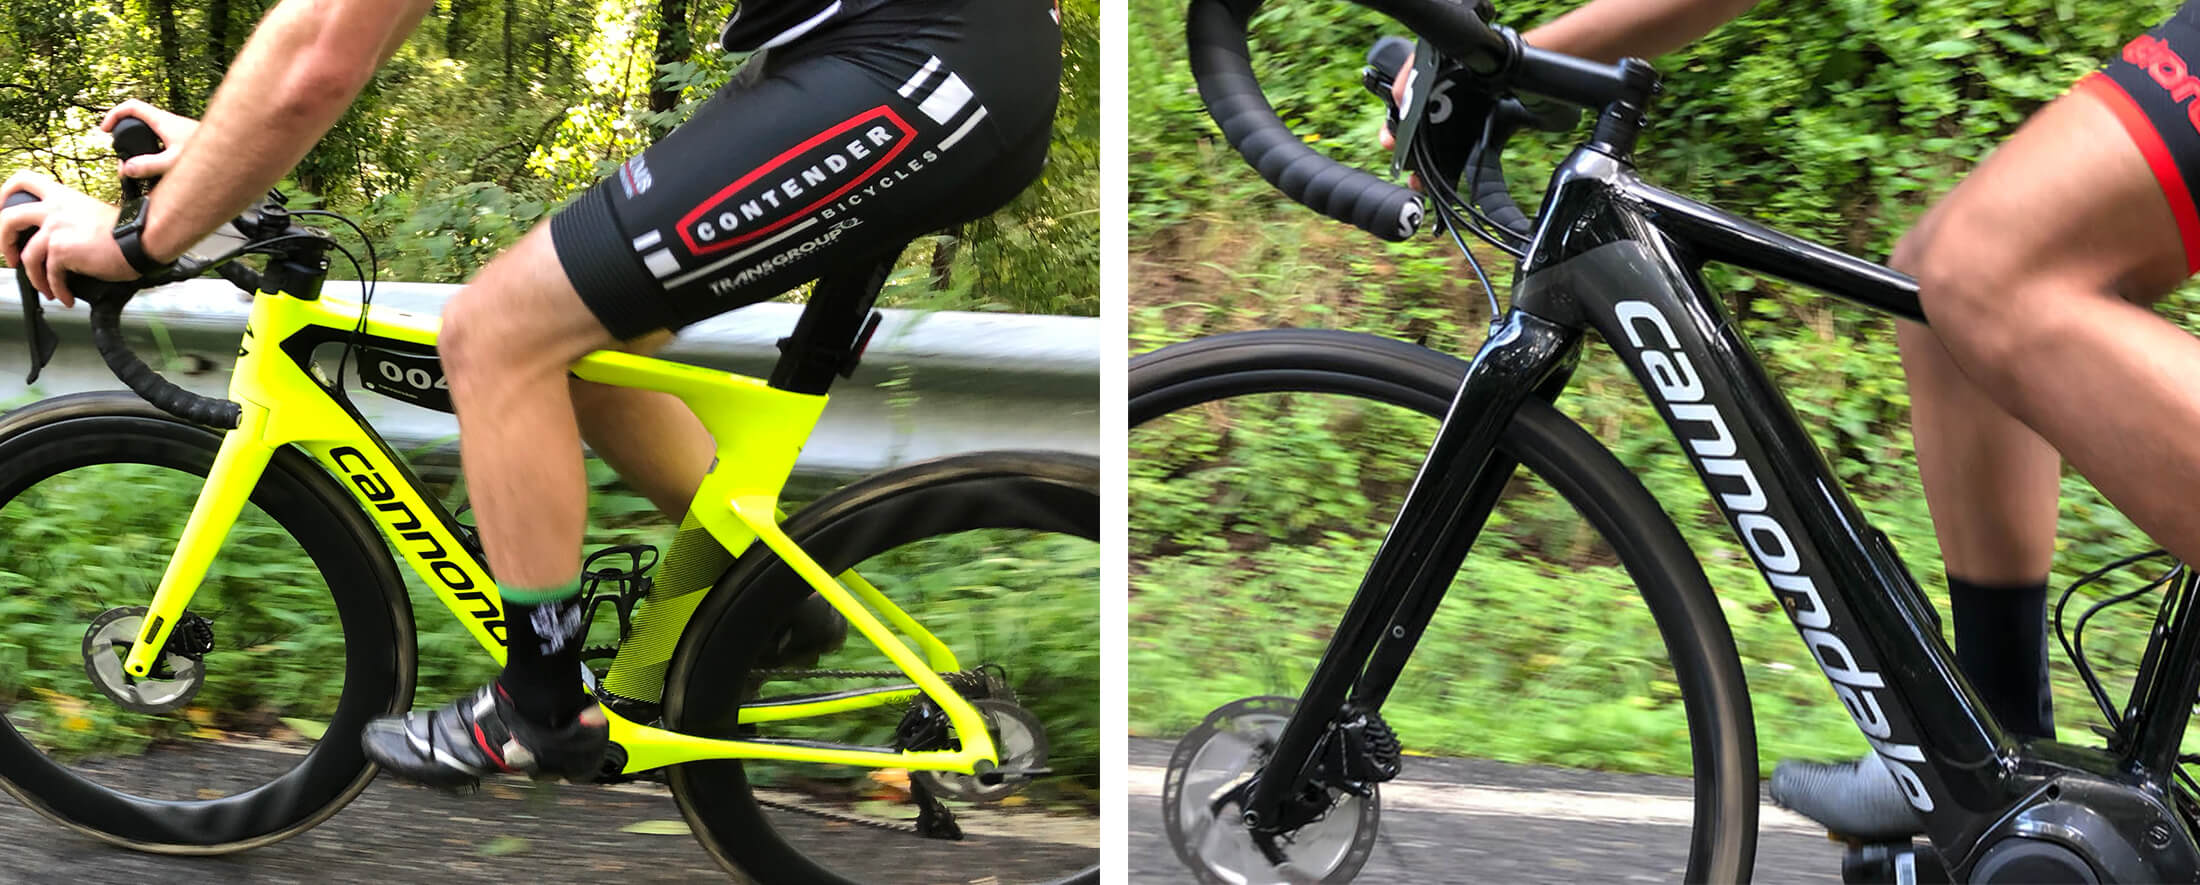 2019 Cannondale System Six & Cannondale Synapse NEO